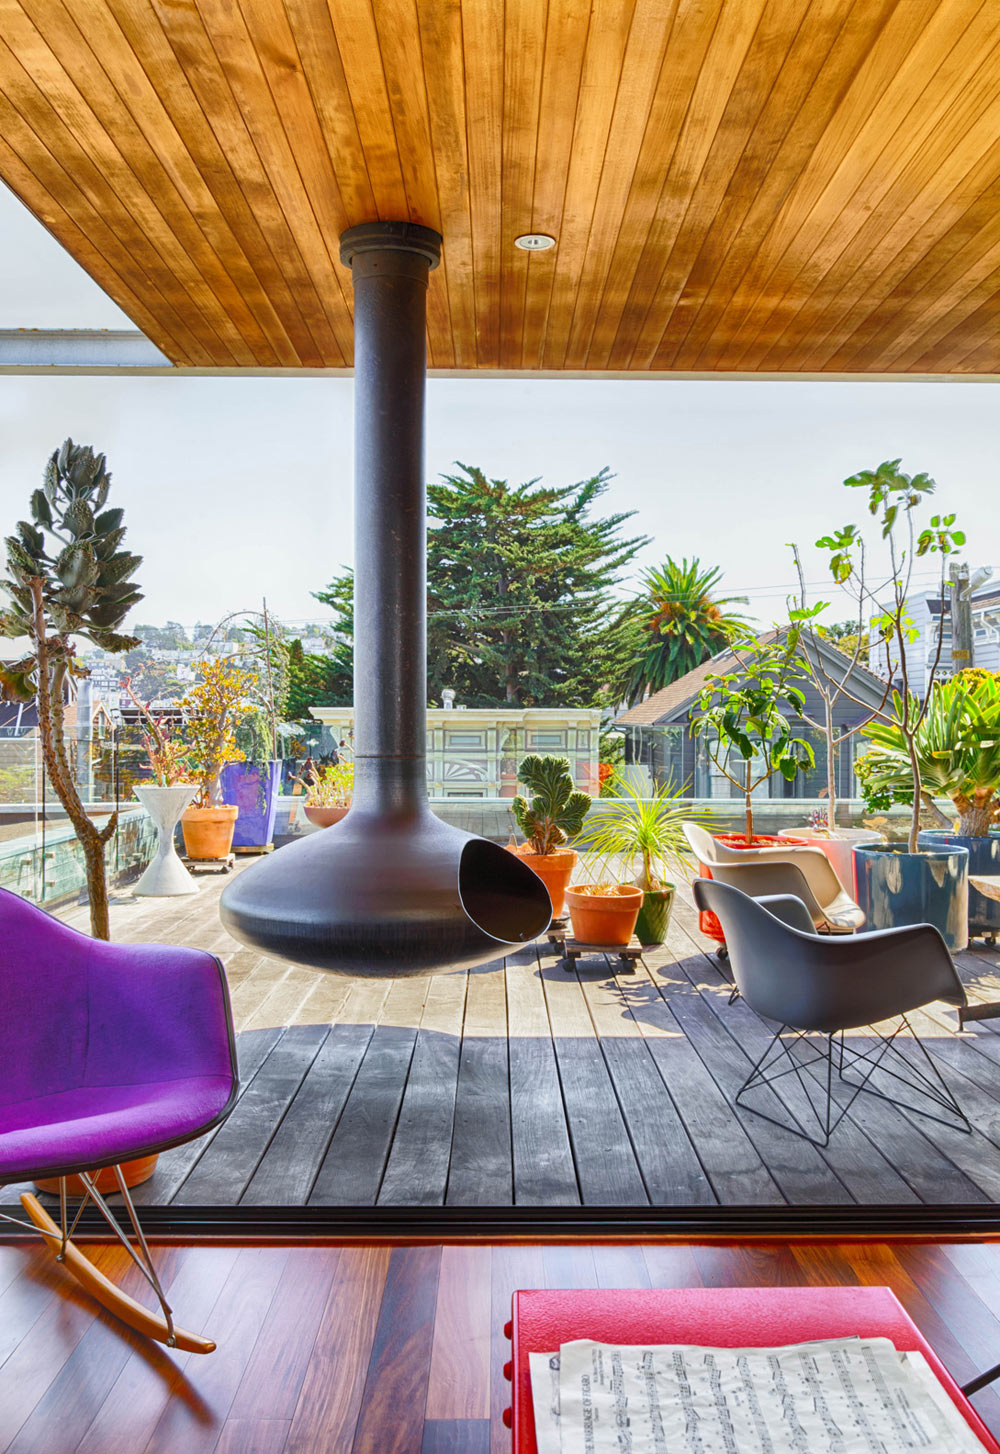 Roof deck of our home and studio in San Francisco. Photo by Daniel Karp